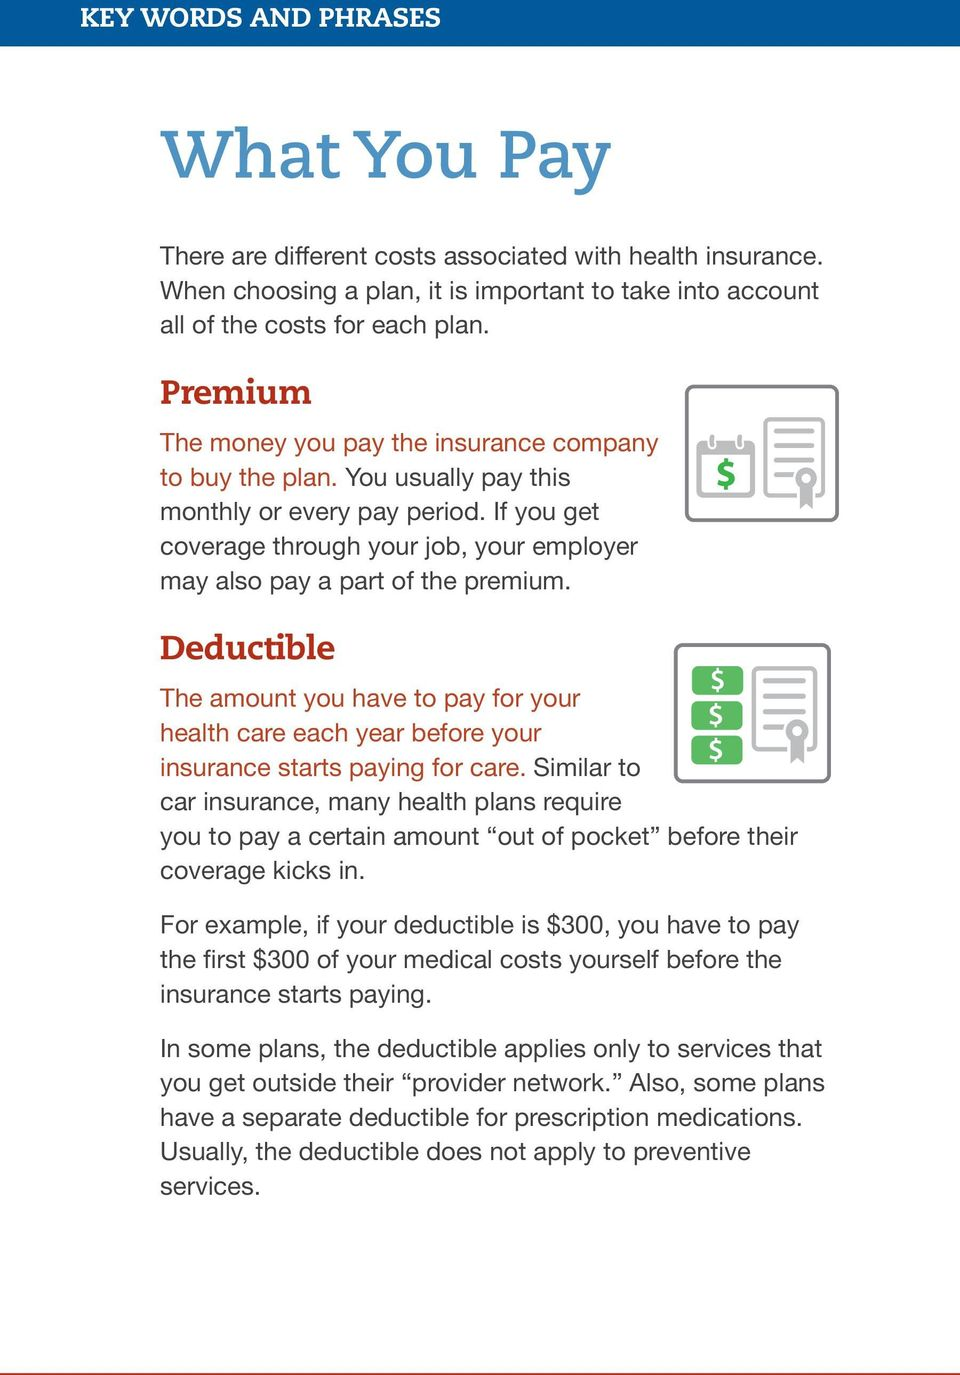 If you get coverage through your job, your employer may also pay a part of the premium.